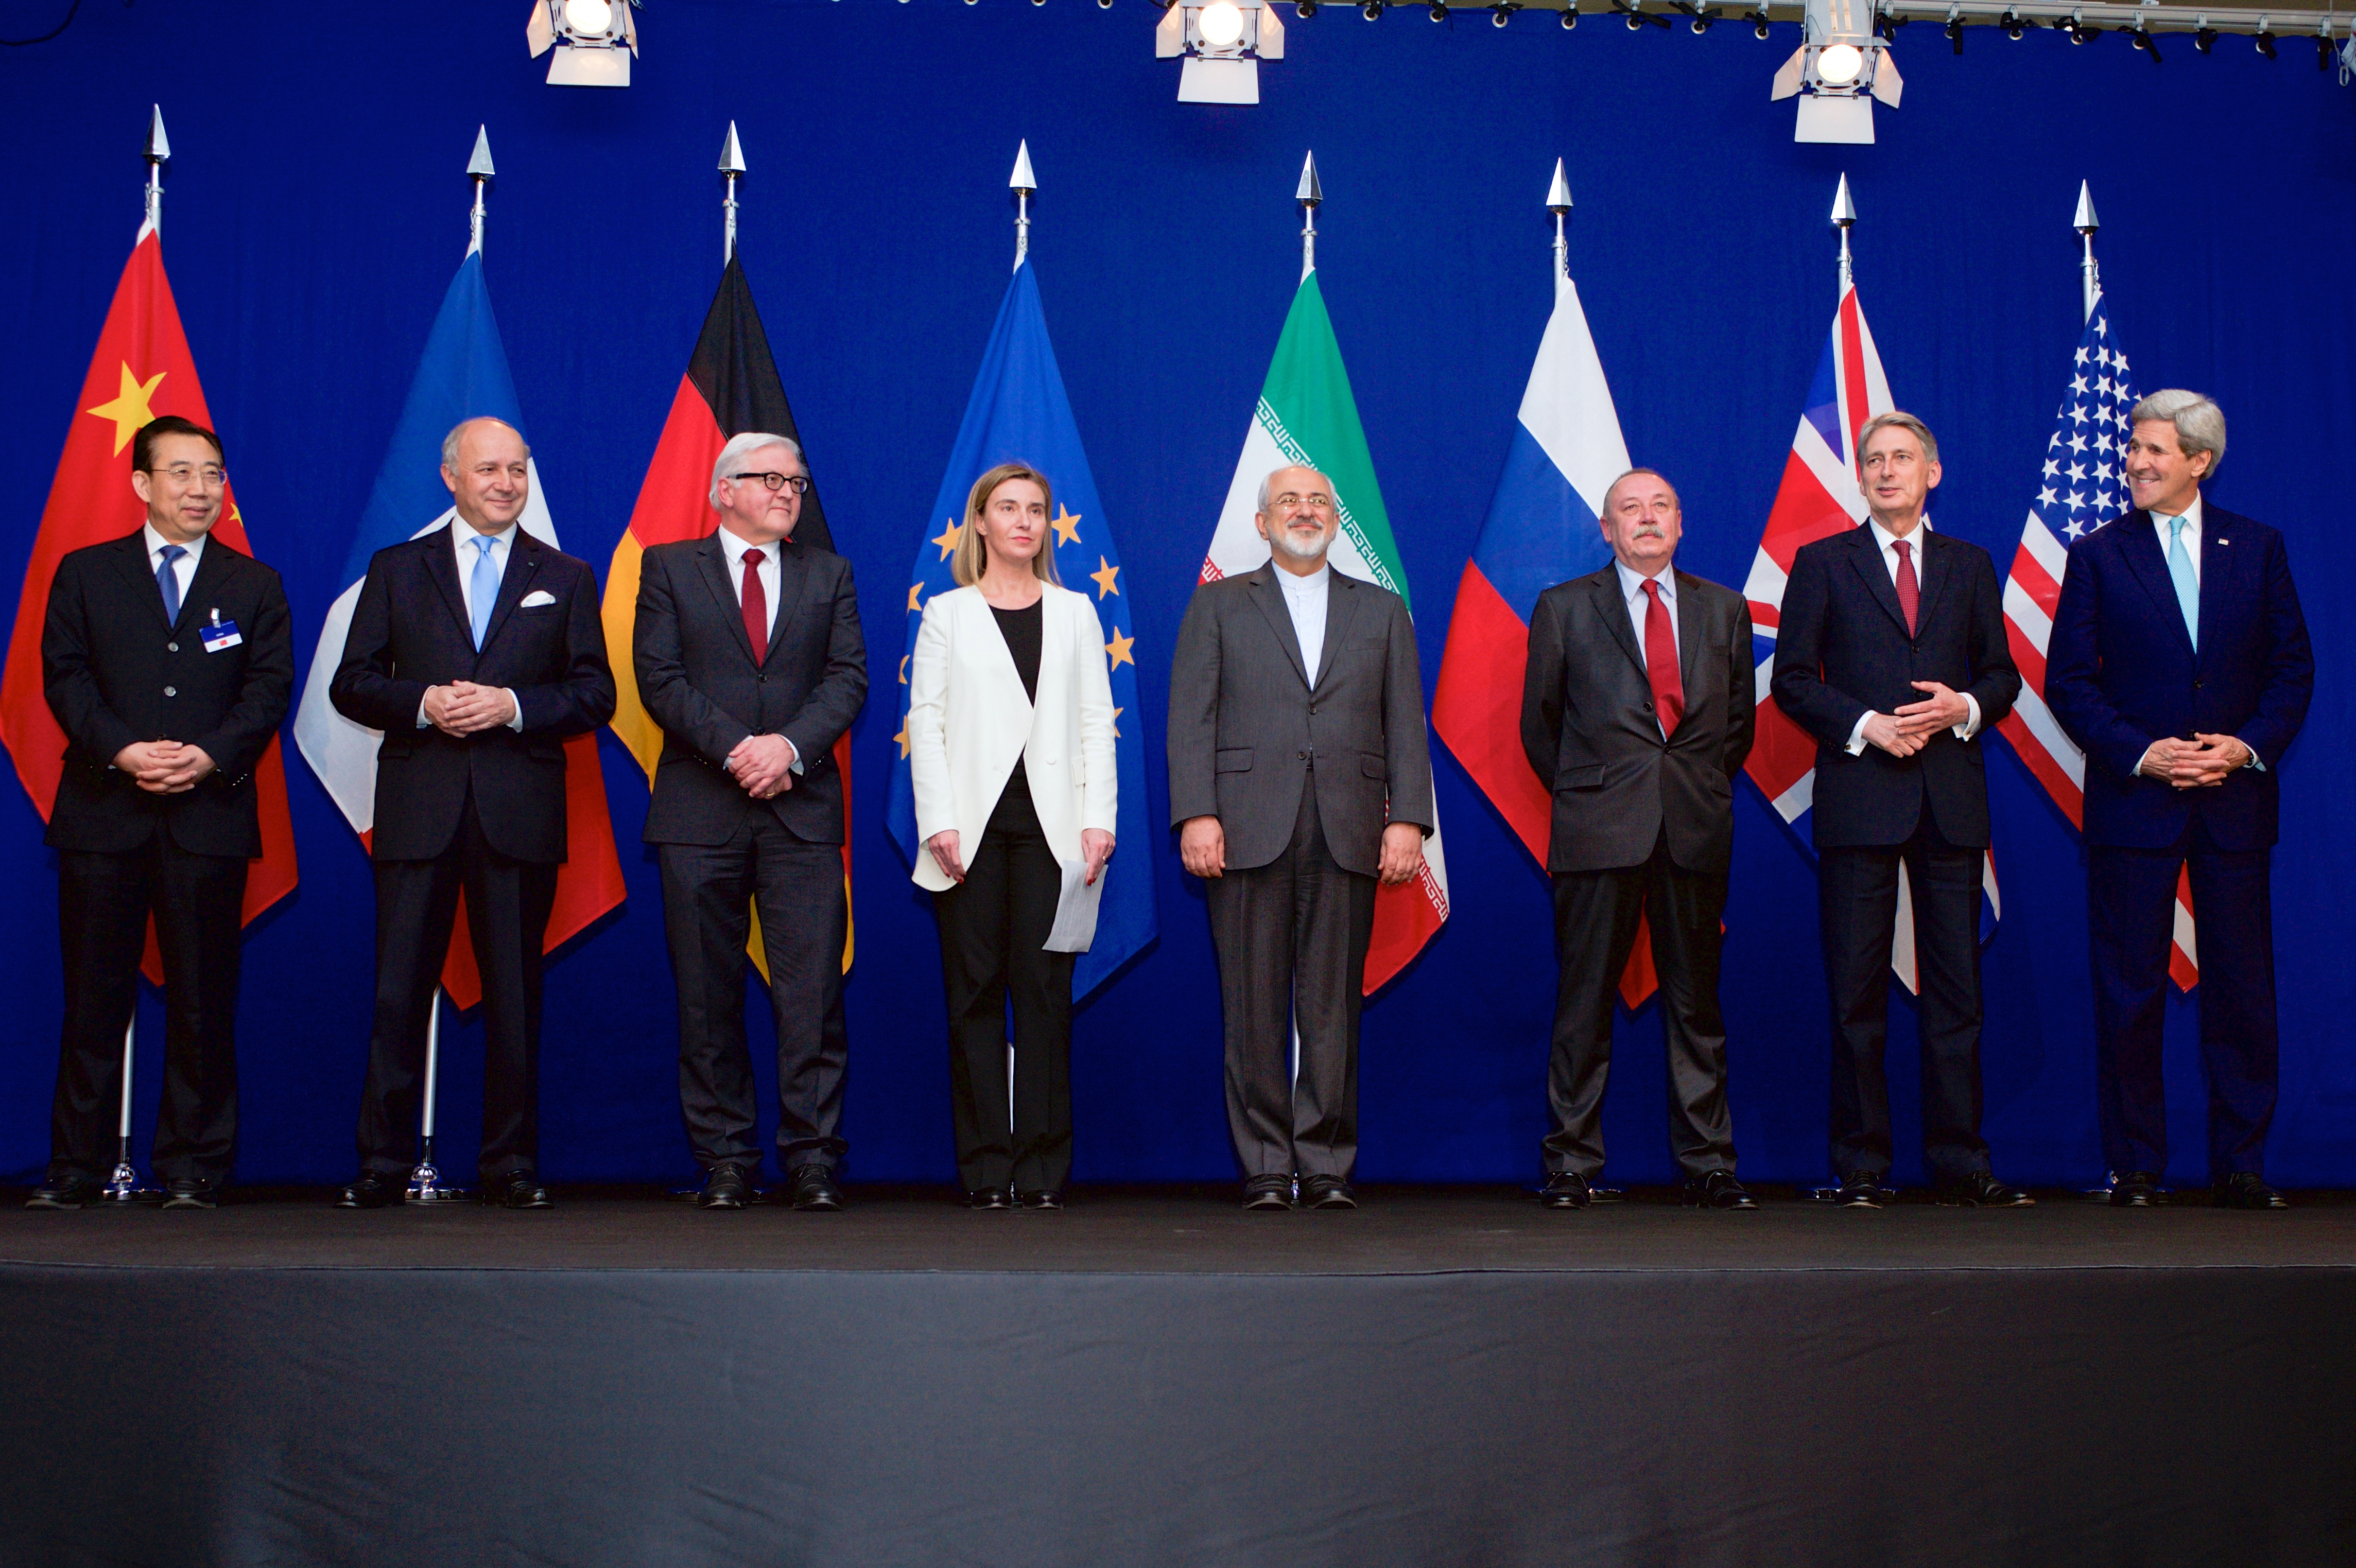 Russia: Relax, Iran's Not Breaching International Law Featured